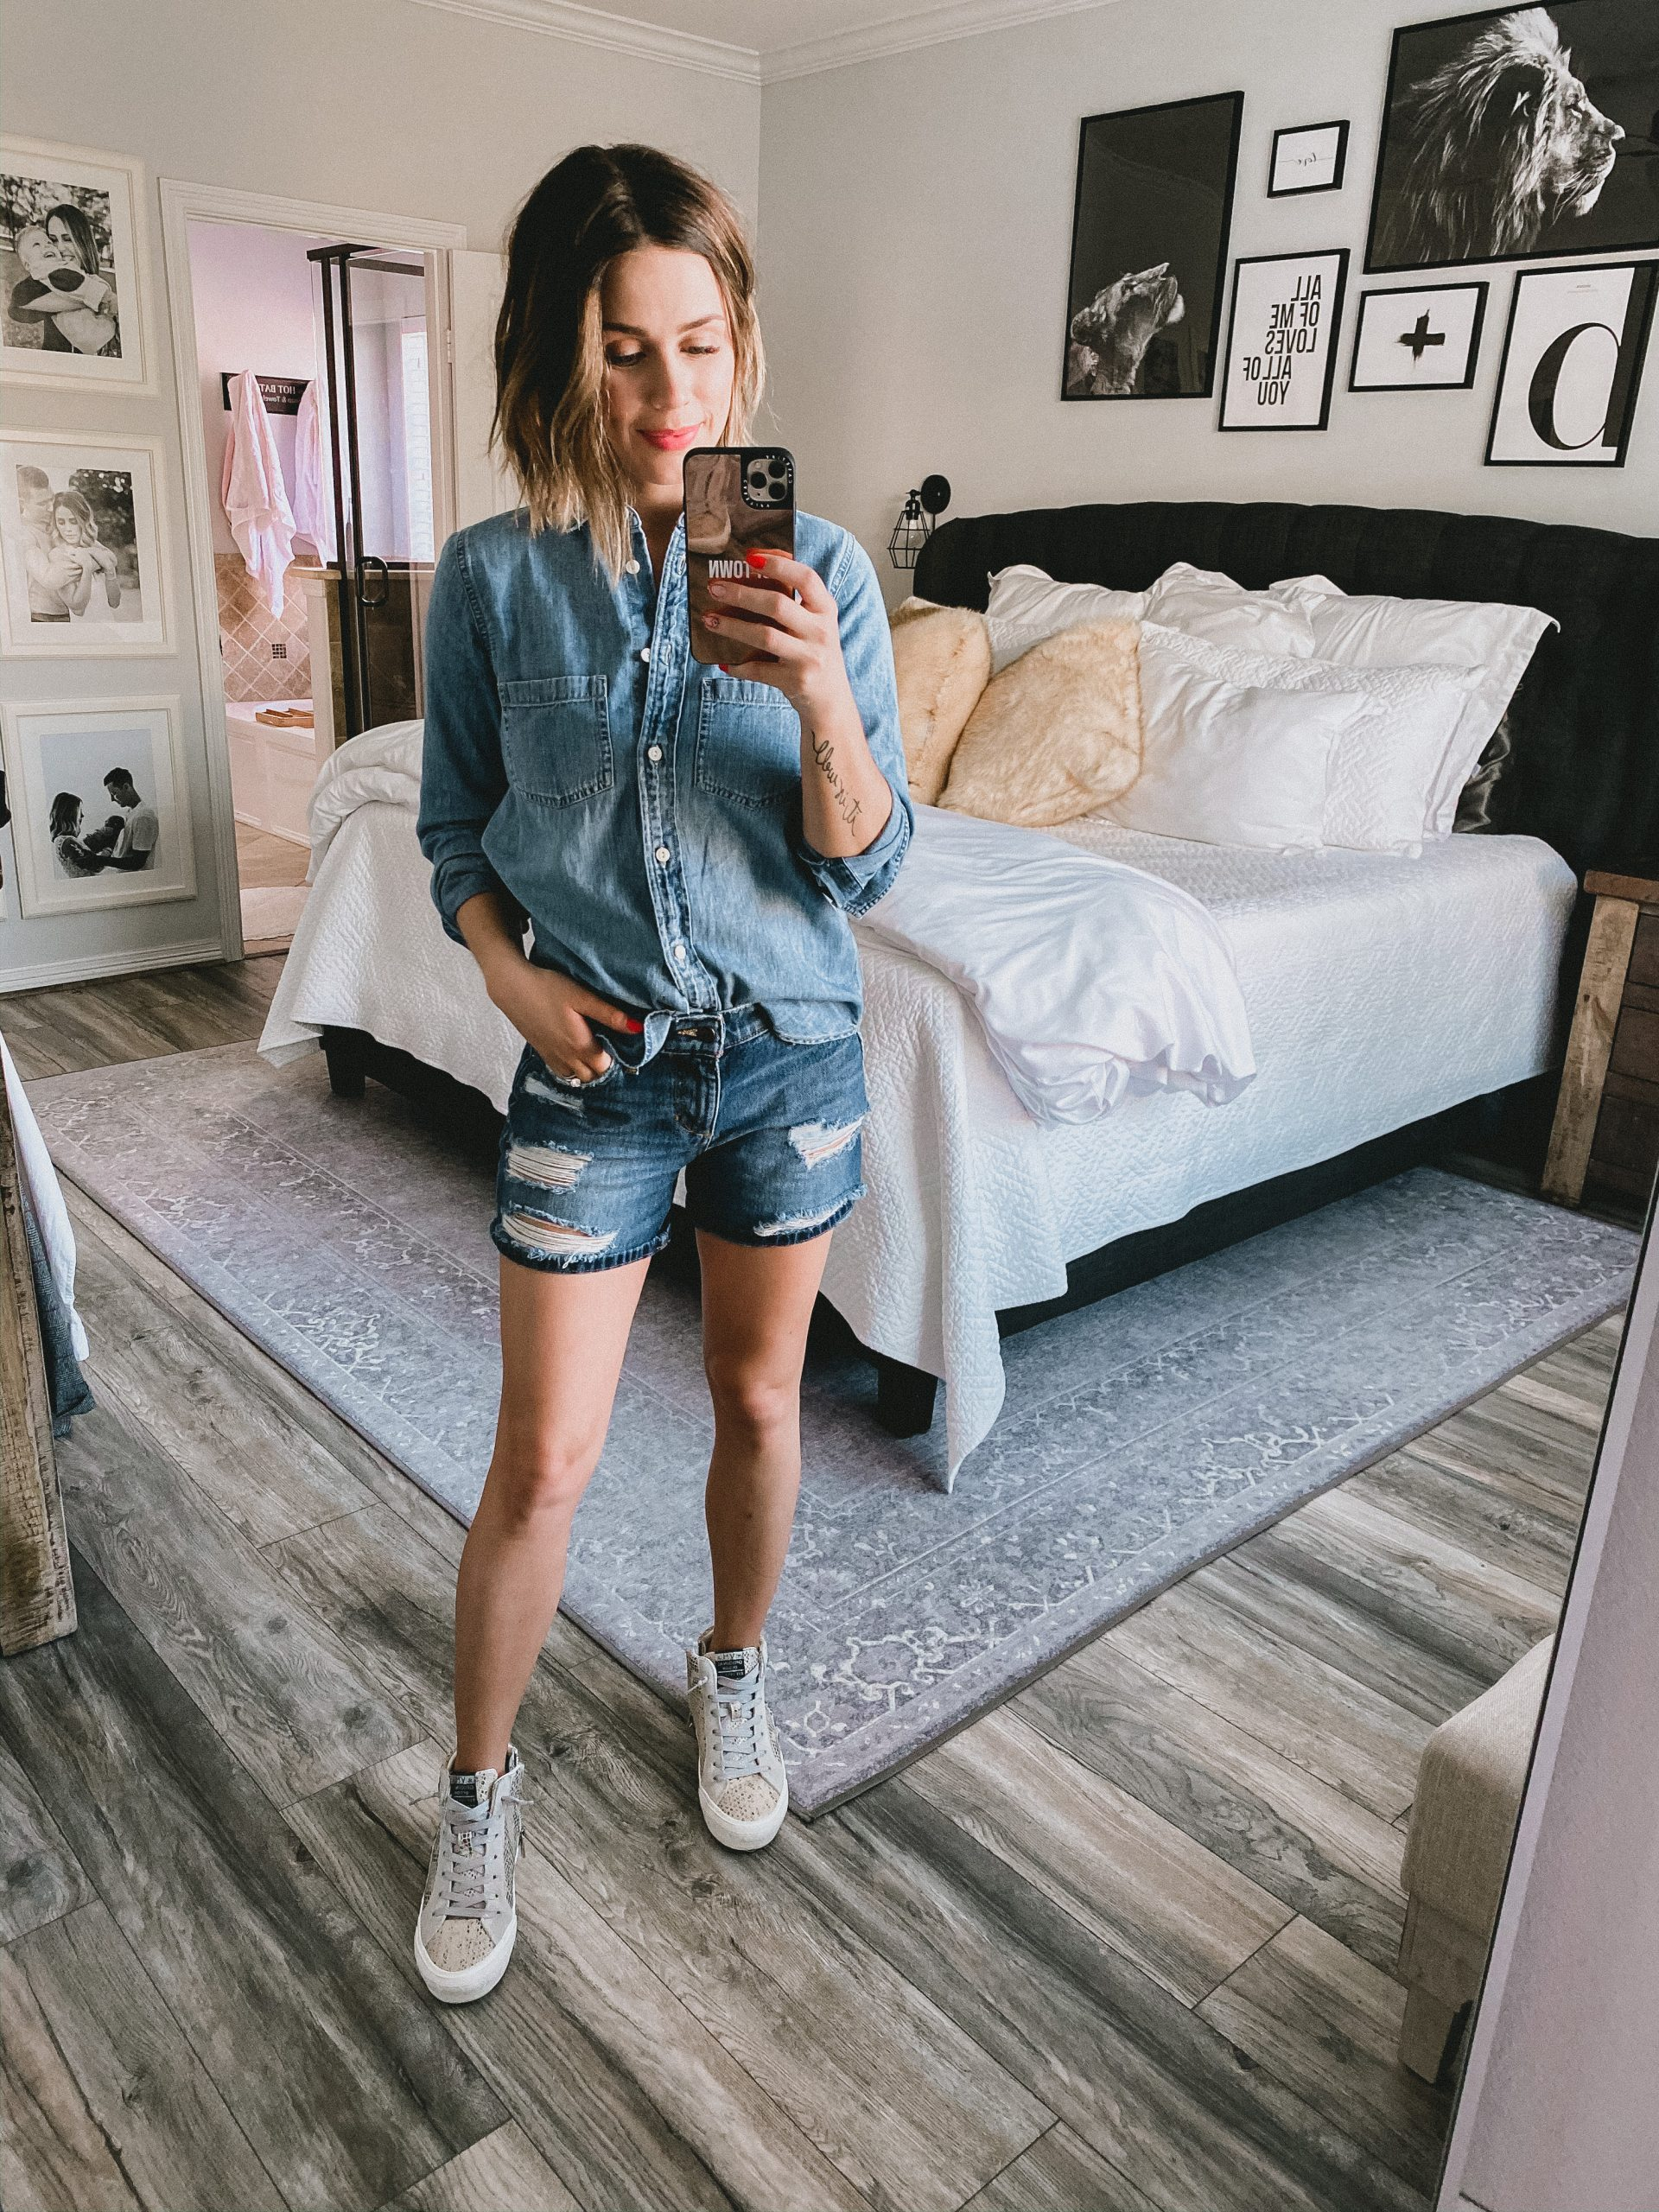 Looking for outfit ideas? Houston fashion blogger Elly Brown shares How to Wear a Women's Button Up Top from day to night!